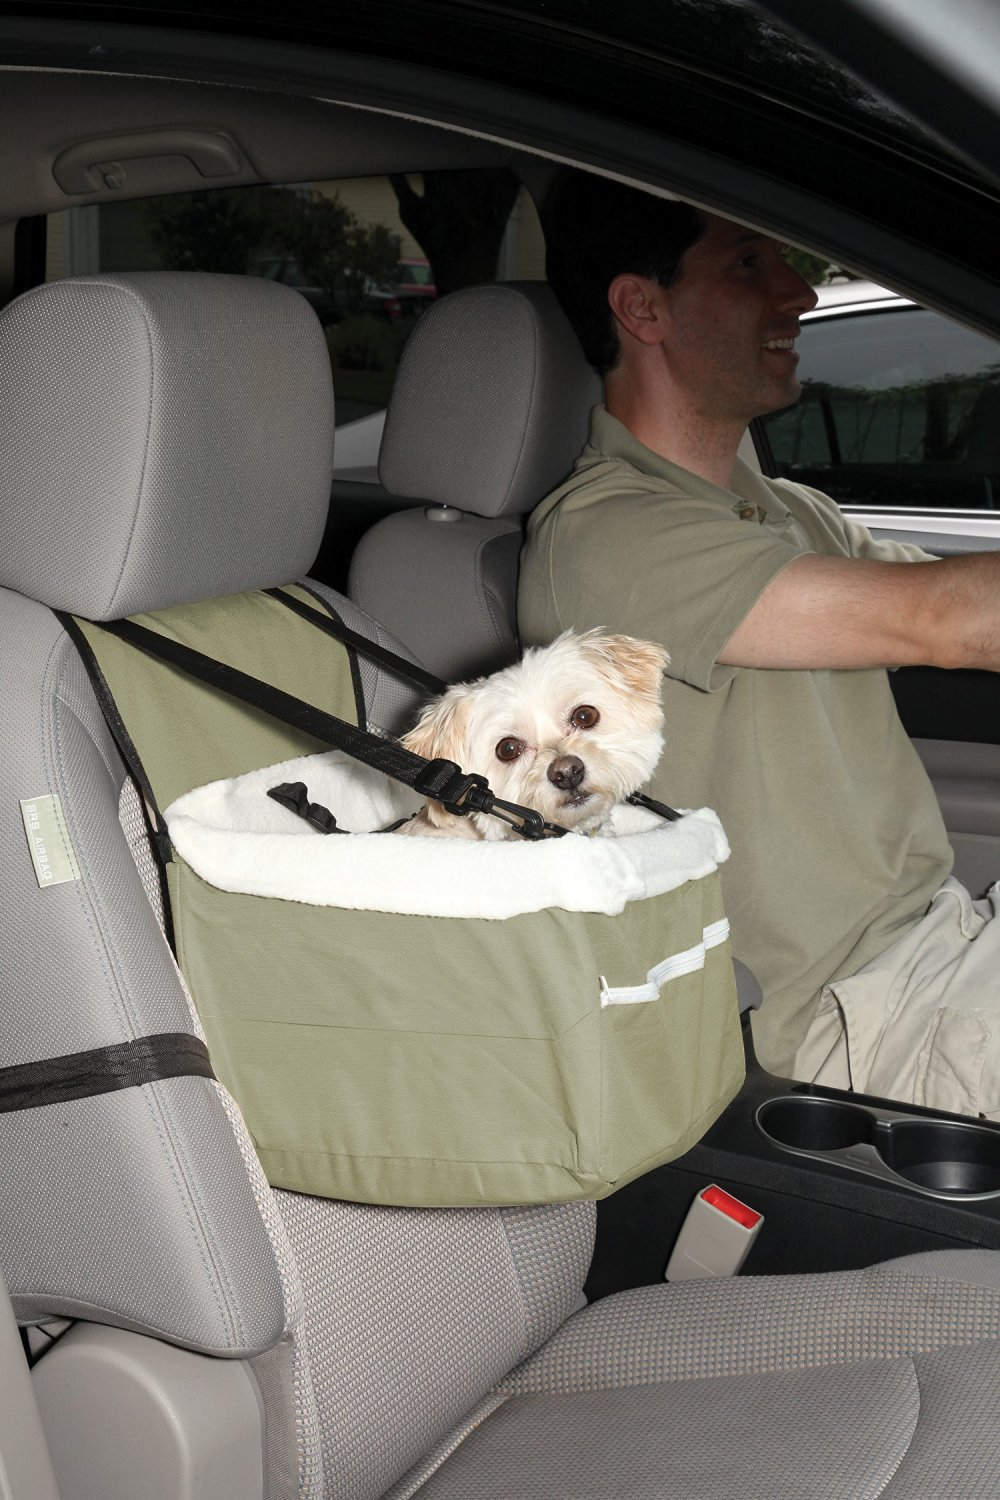 Ideas In Life Portable Car Pet Booster Seat with Clip-On Safety Leash And Zipper Storage Pocket by Ideas In Life